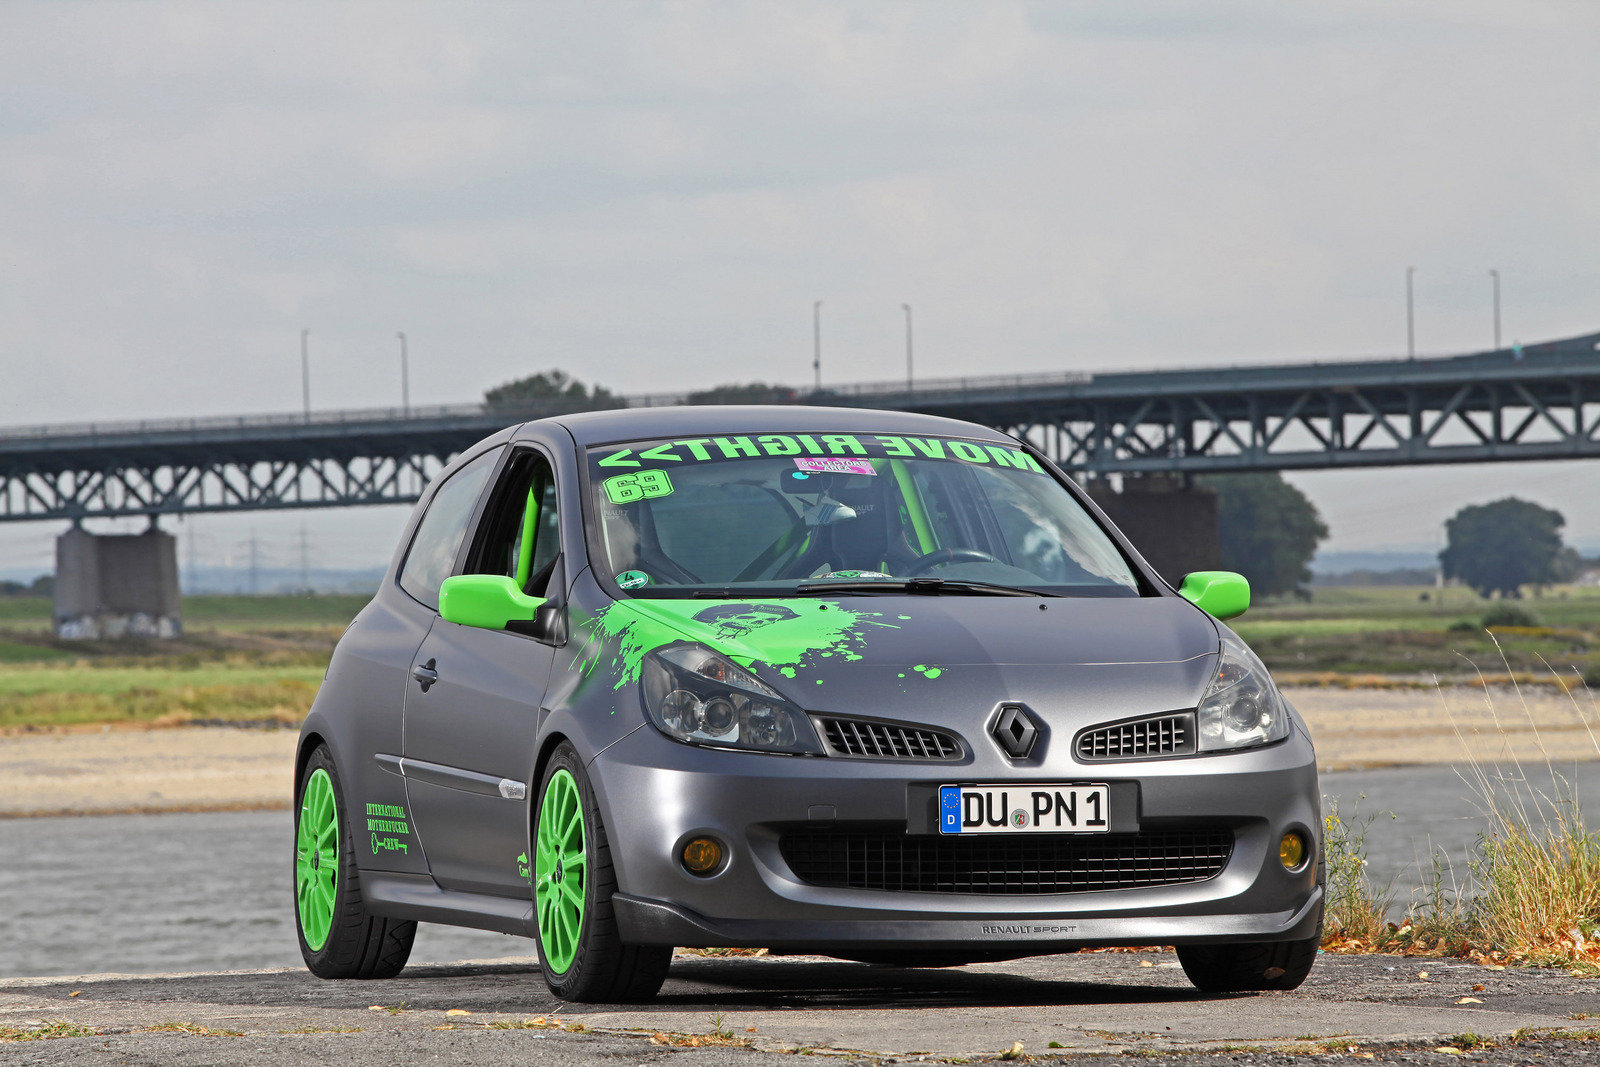 speed dating clio rs She does not arrive at your table and instead you are lead to a renault clio rs so you sign up for speed dating how racing enthusiasts speed date (video) by.